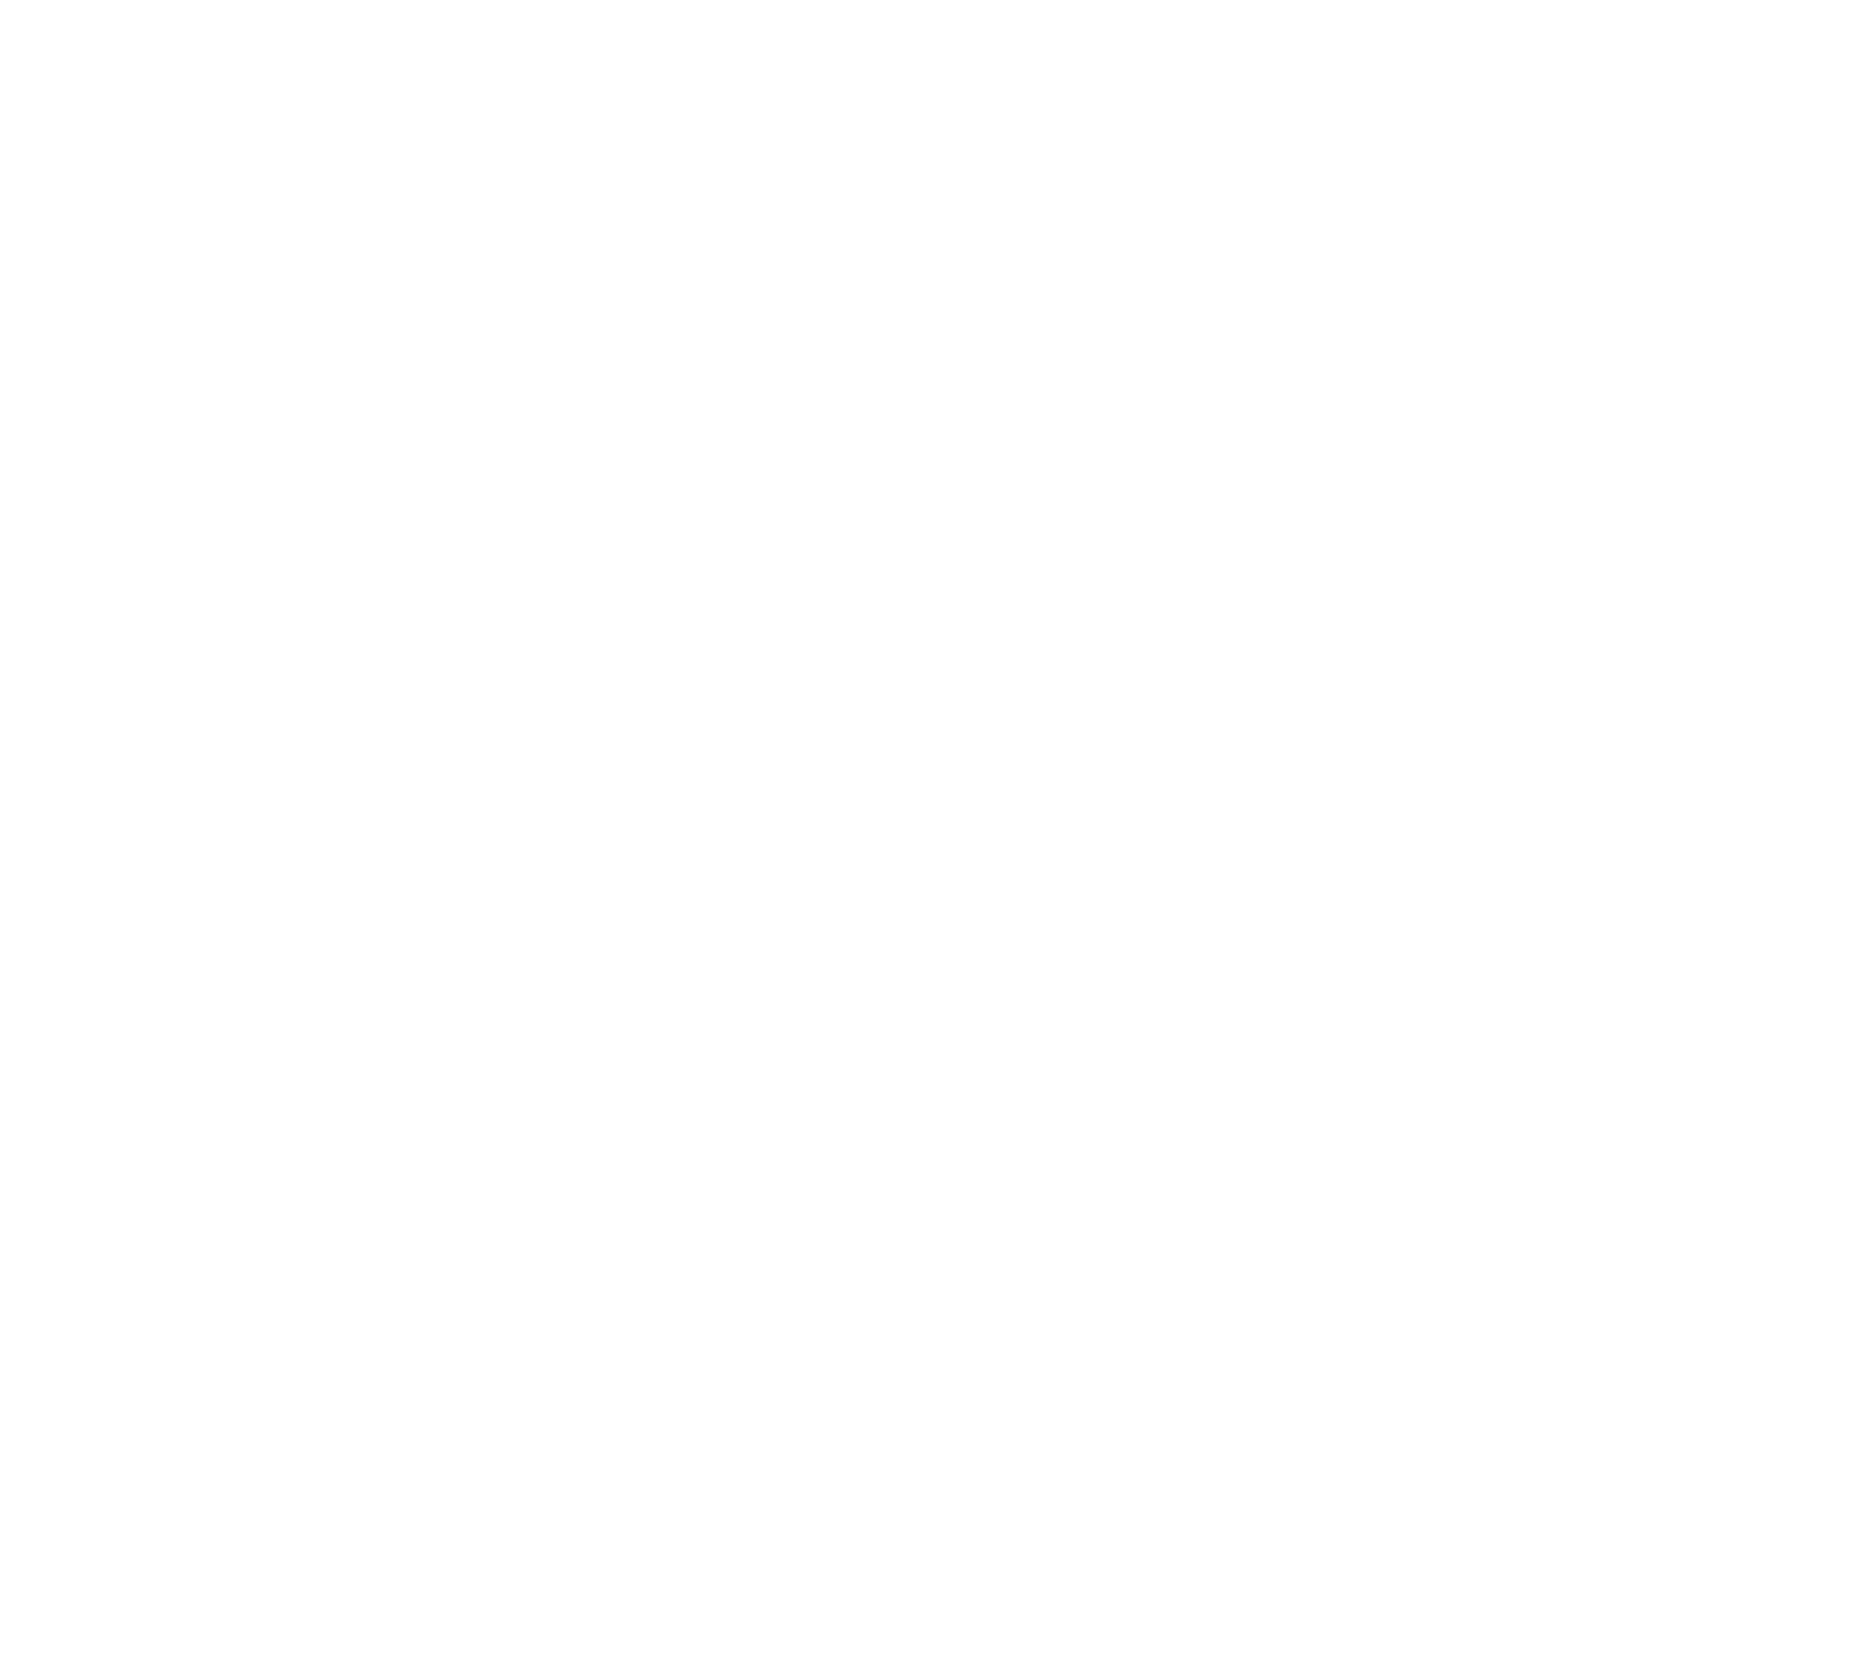 truckfly-image-publisher/europe-map.png